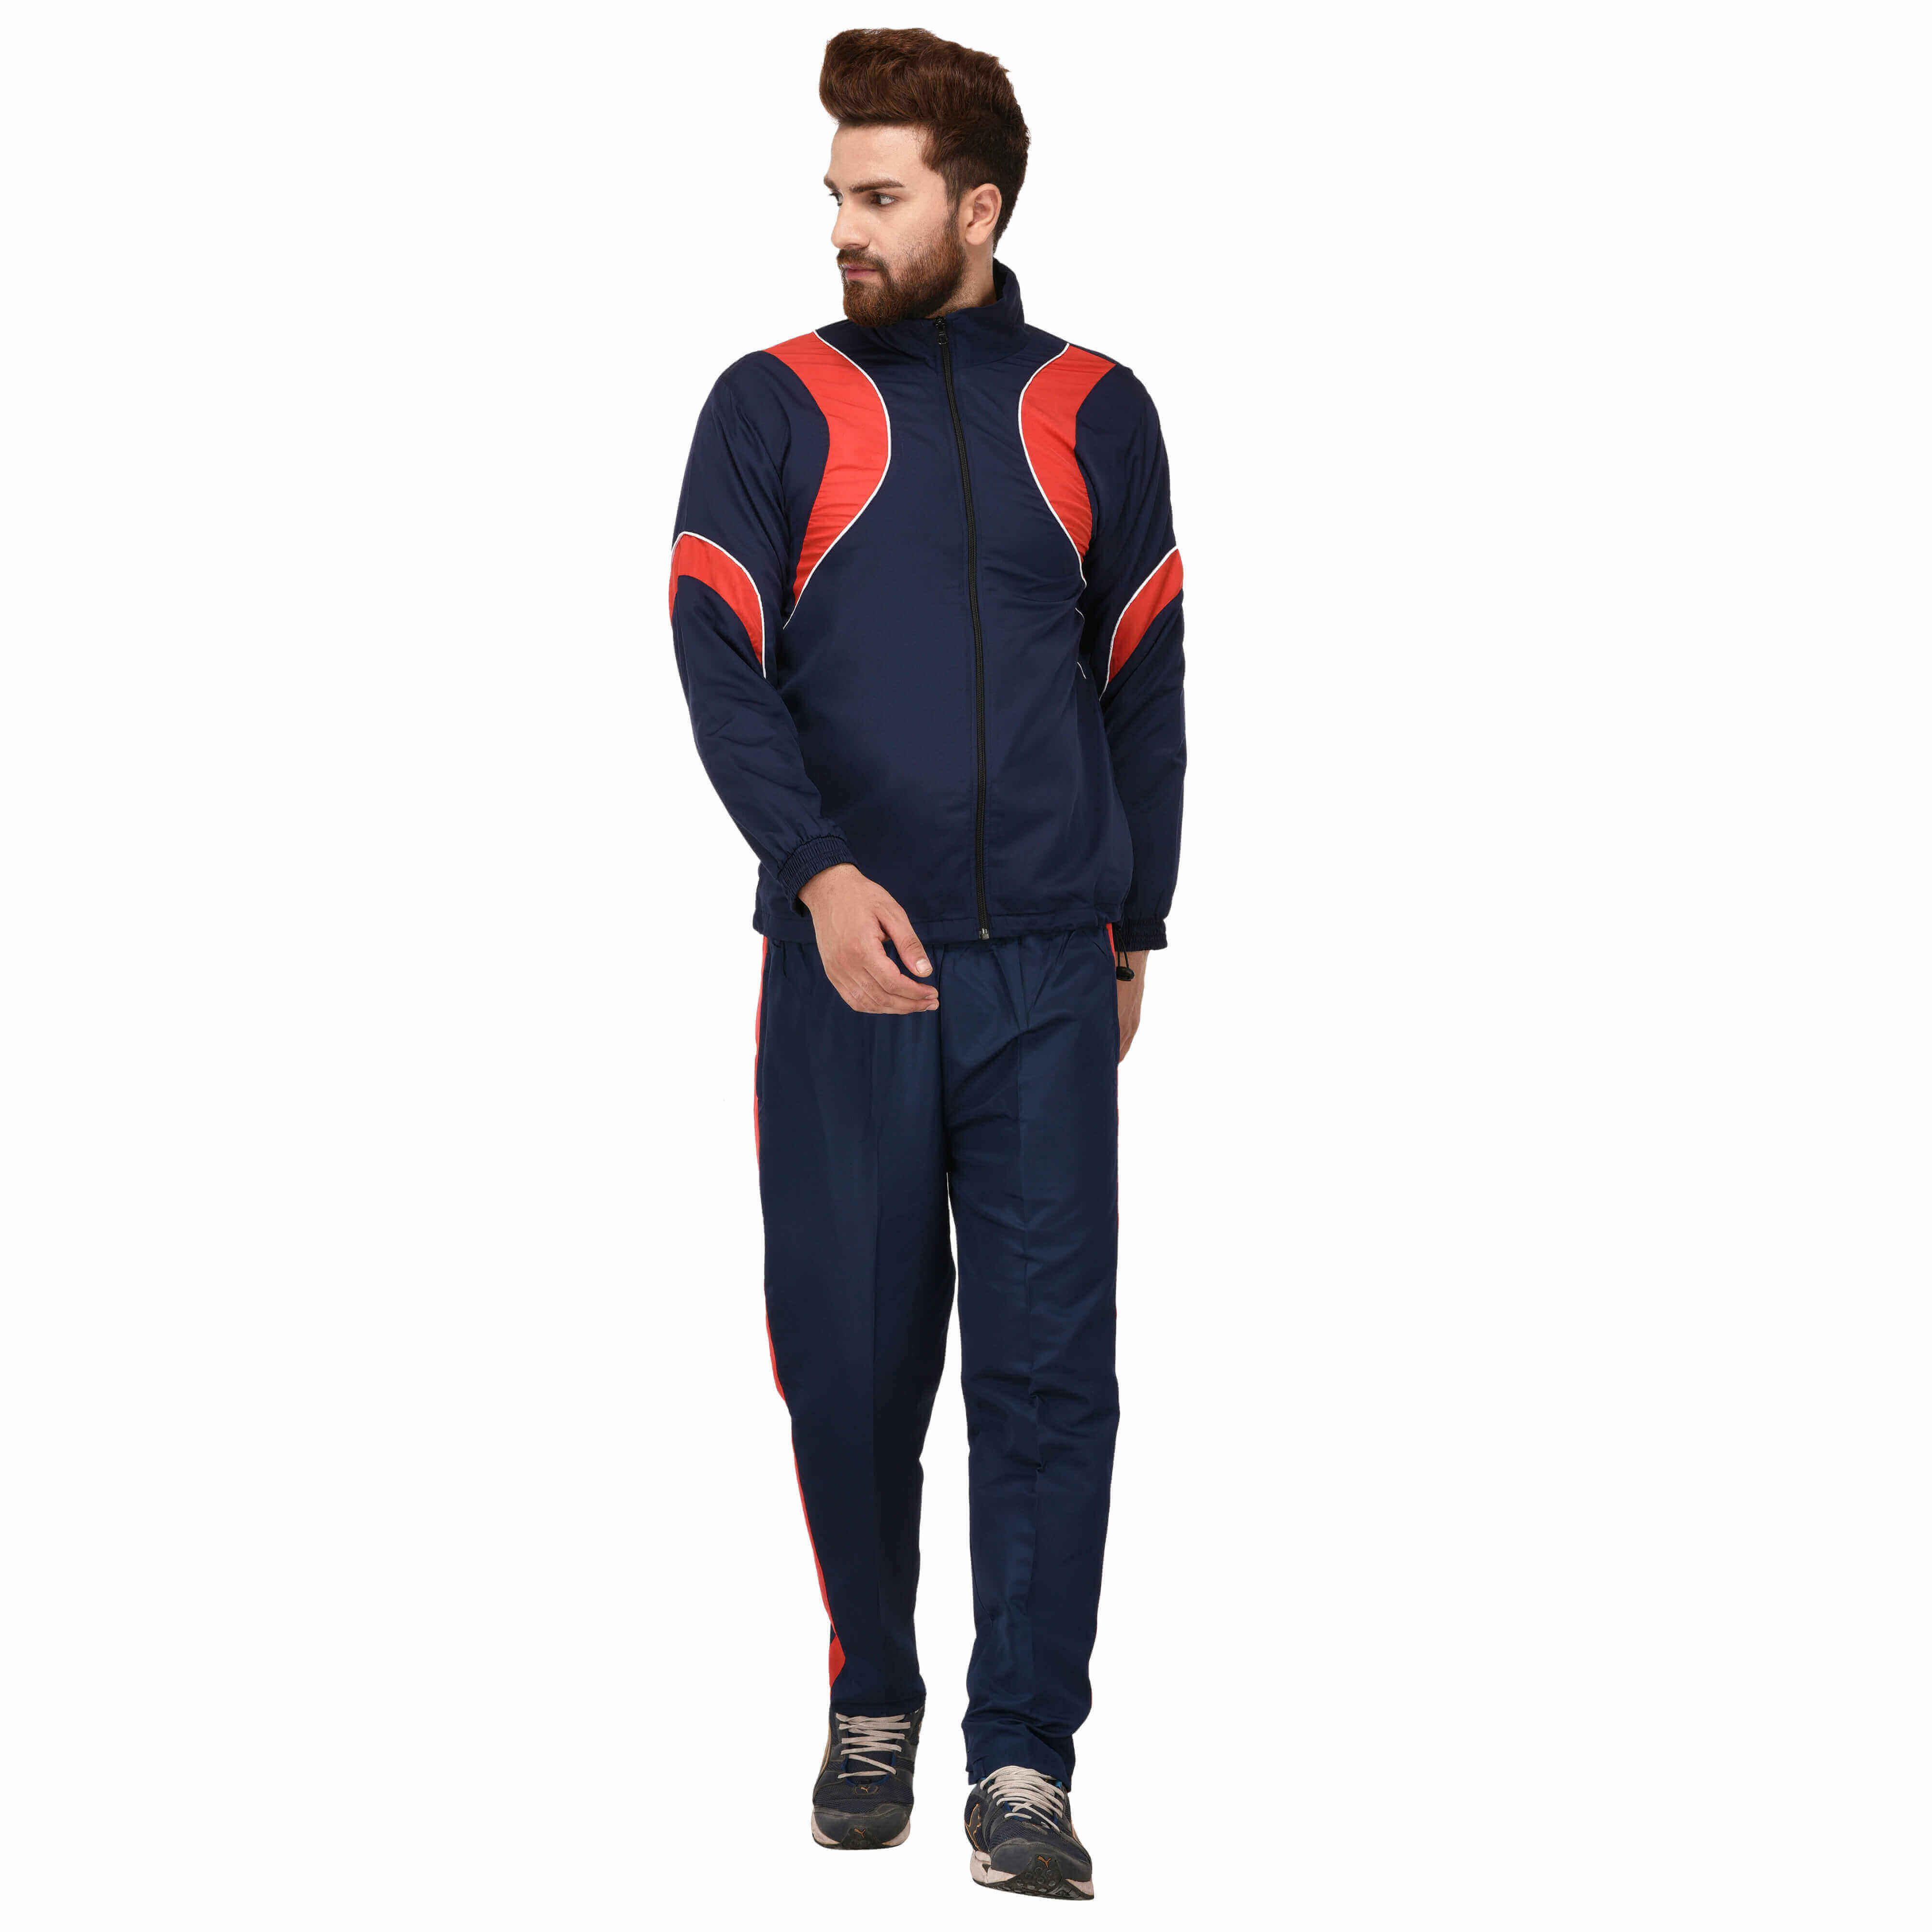 Red Tracksuit Manufacturers in Thiruvananthapuram